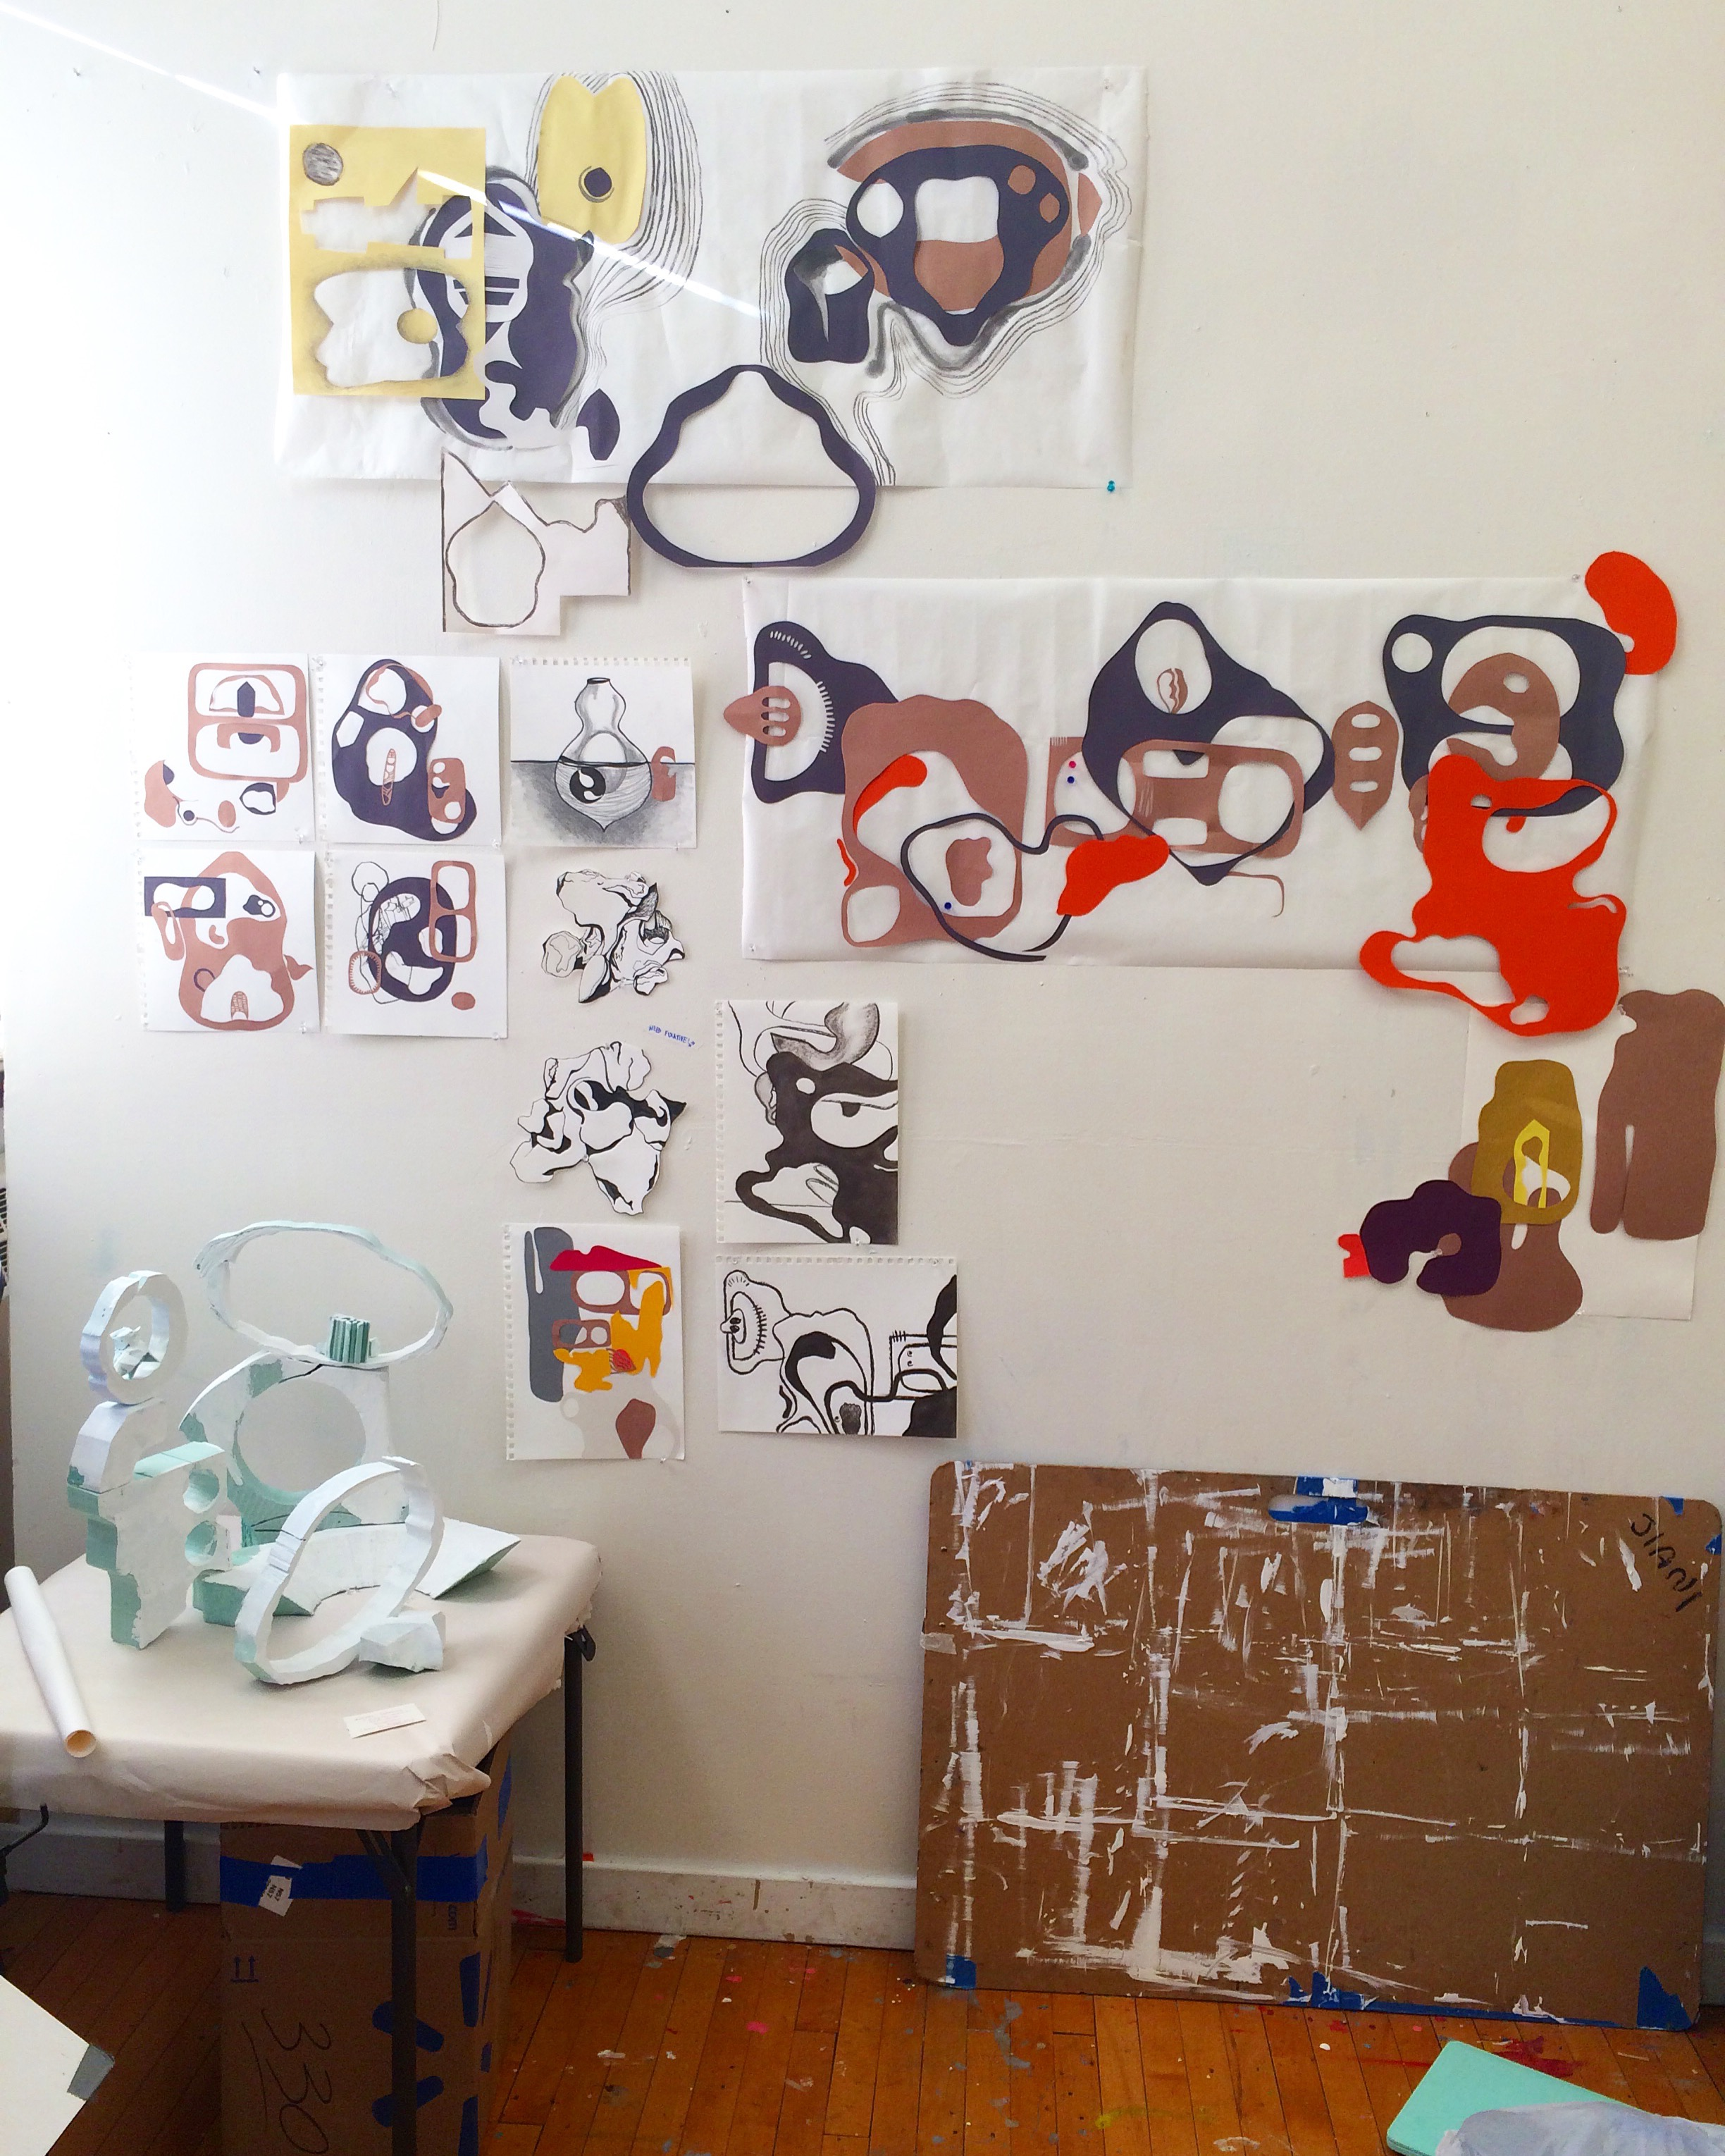 And this is what my corner in the studio looks like yesterday.